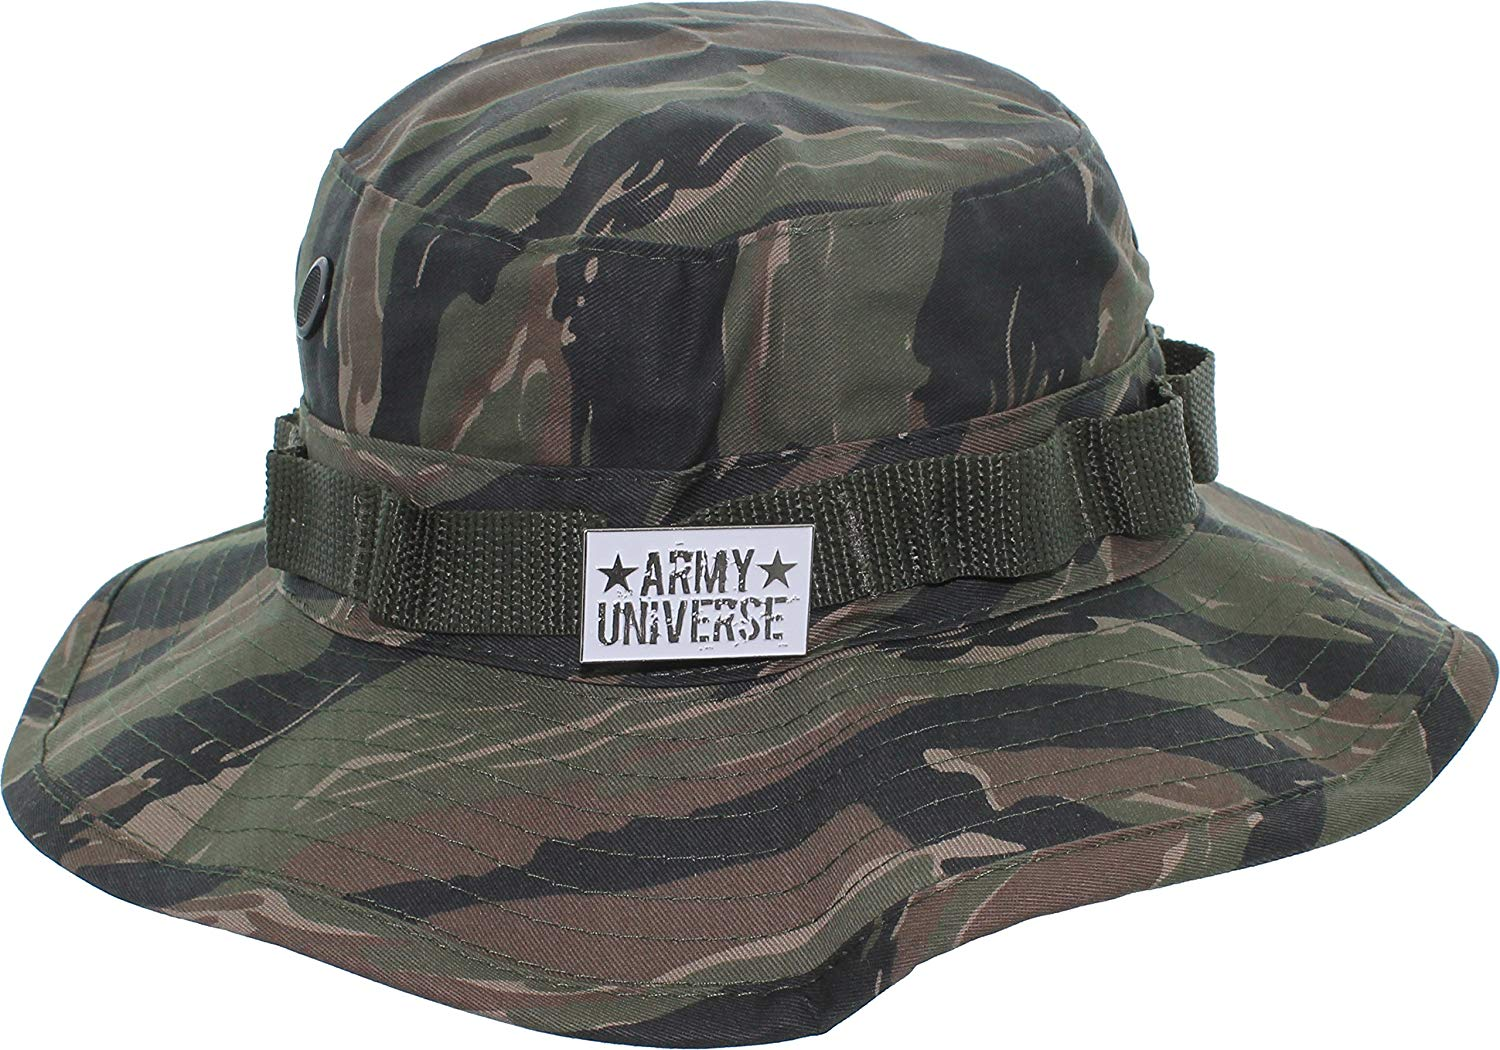 Army Universe Tactical Boonie Hat Military Camo Bucket Wide Brim Sun  Fishing Bush Booney Cap with d47ec827600